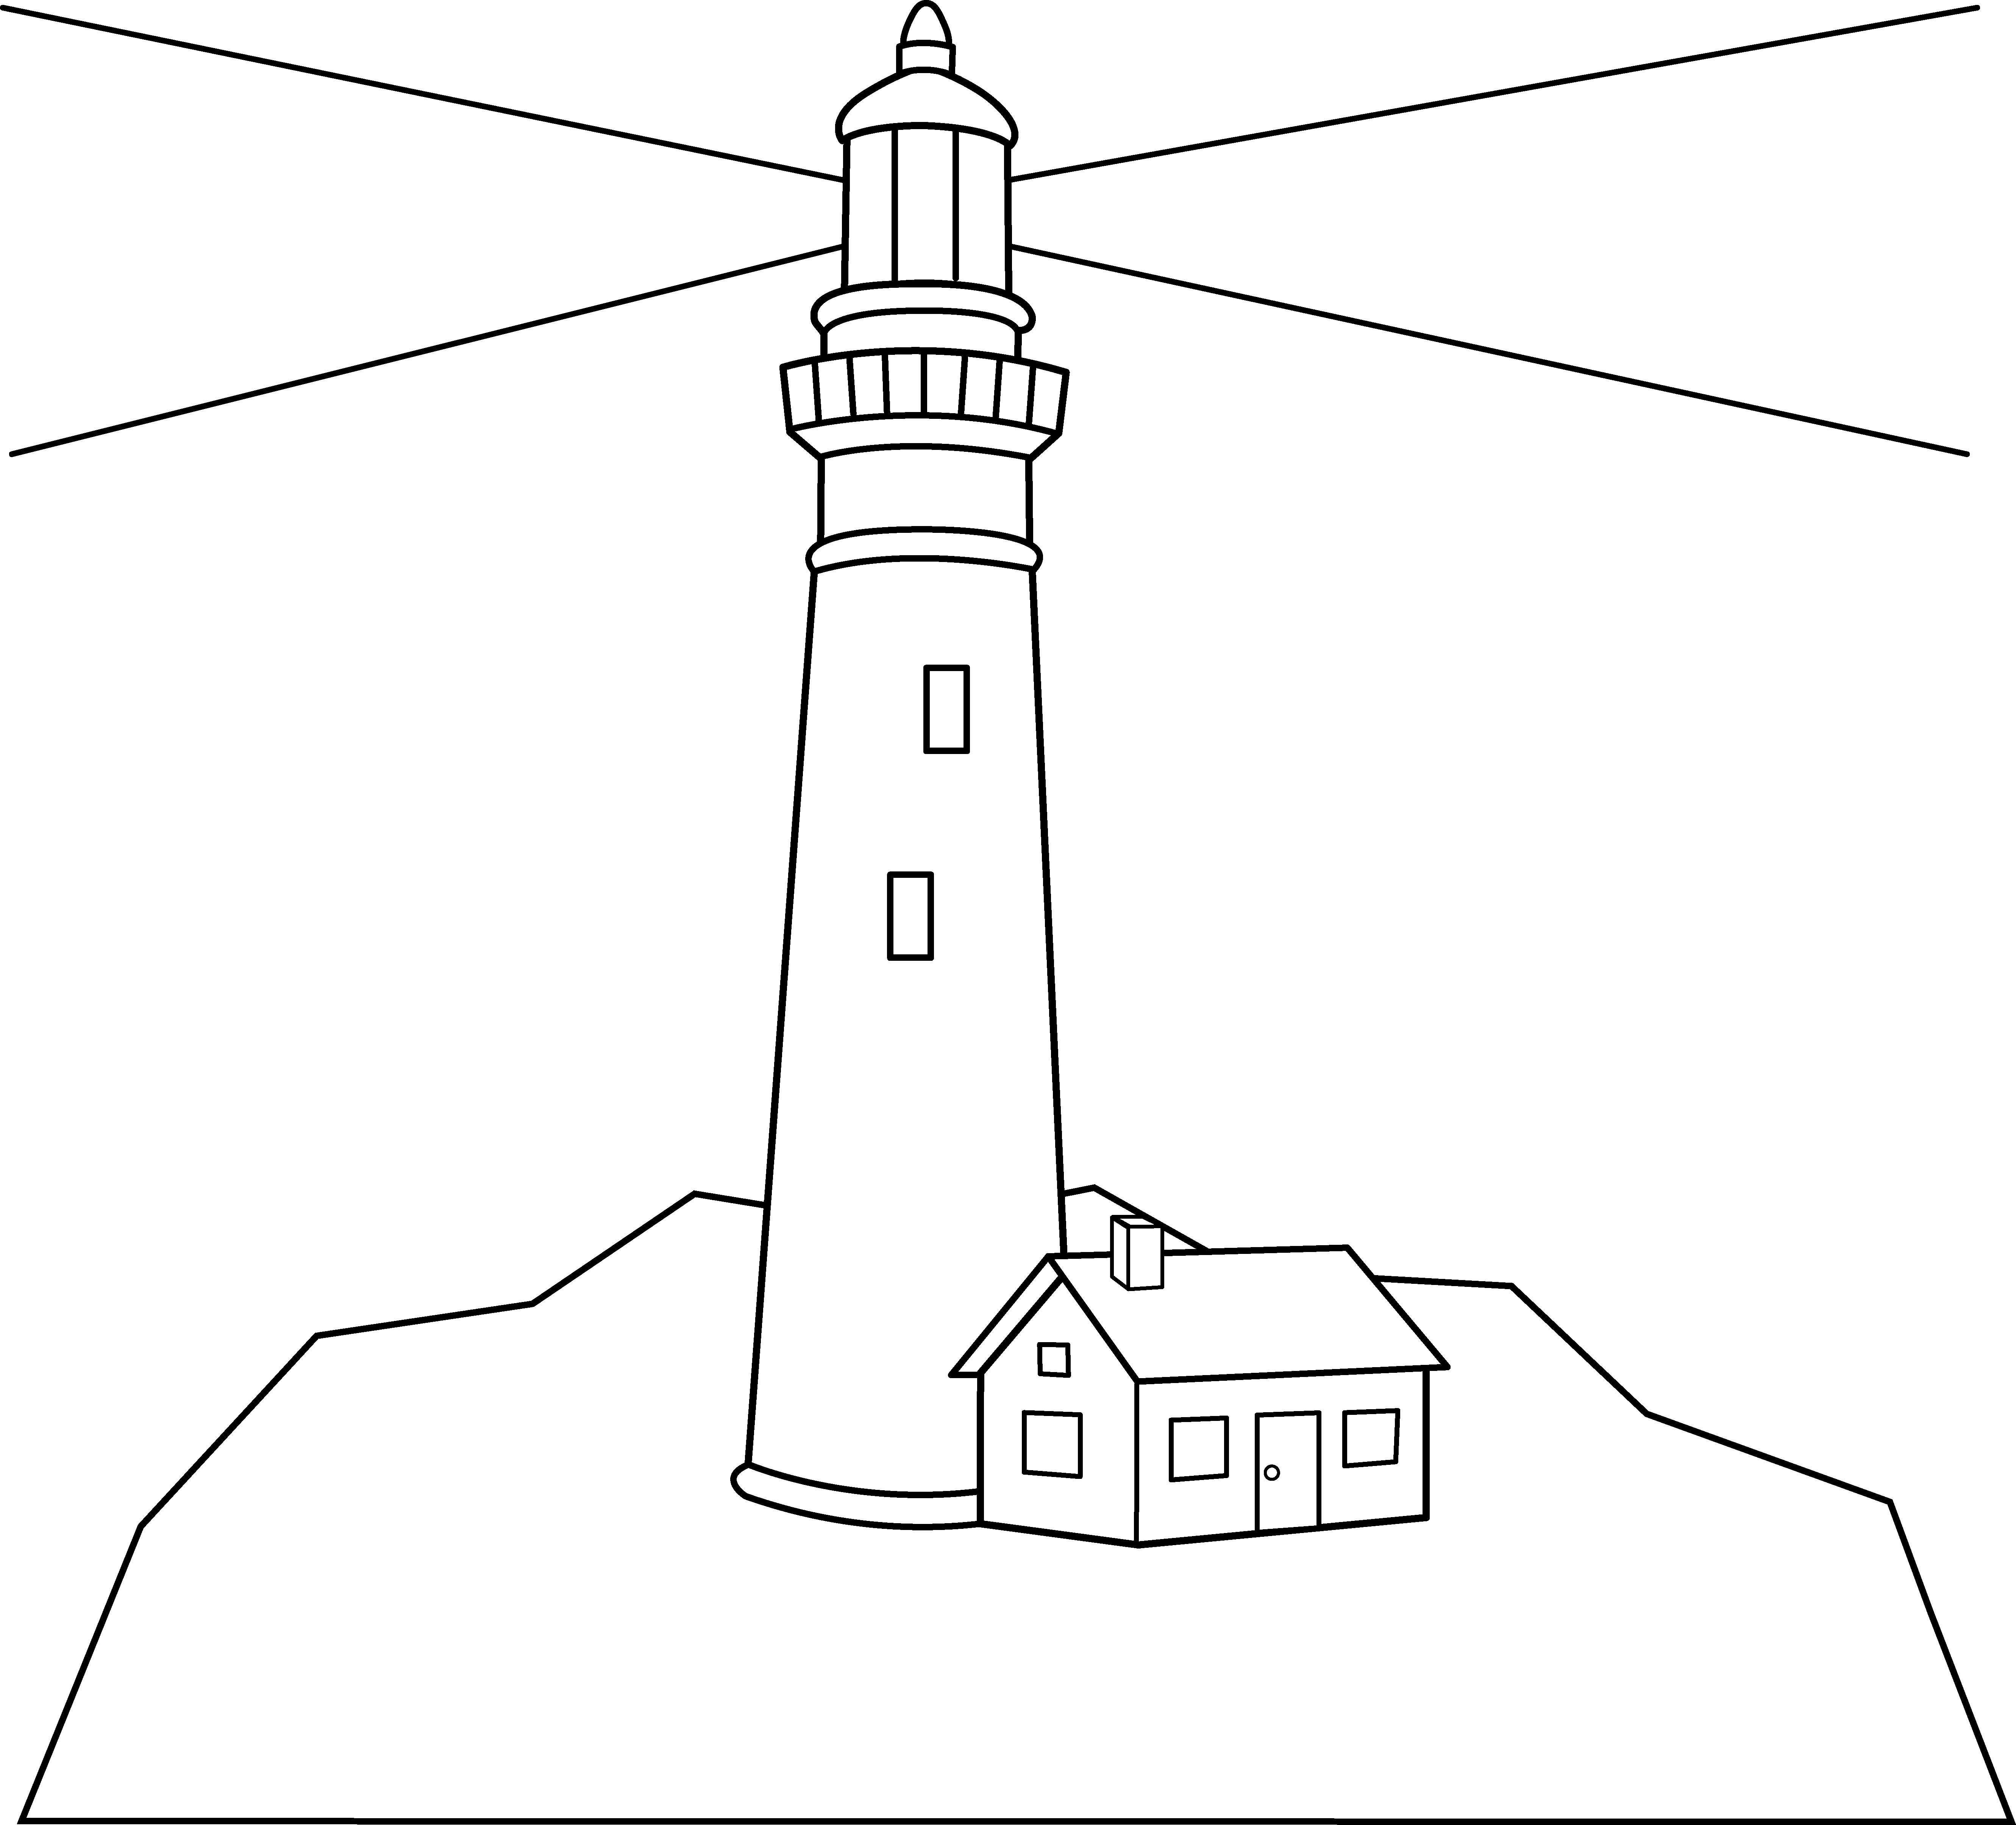 Lighthouse clipart simple Outline Lighthouse Outline Outline Drawing